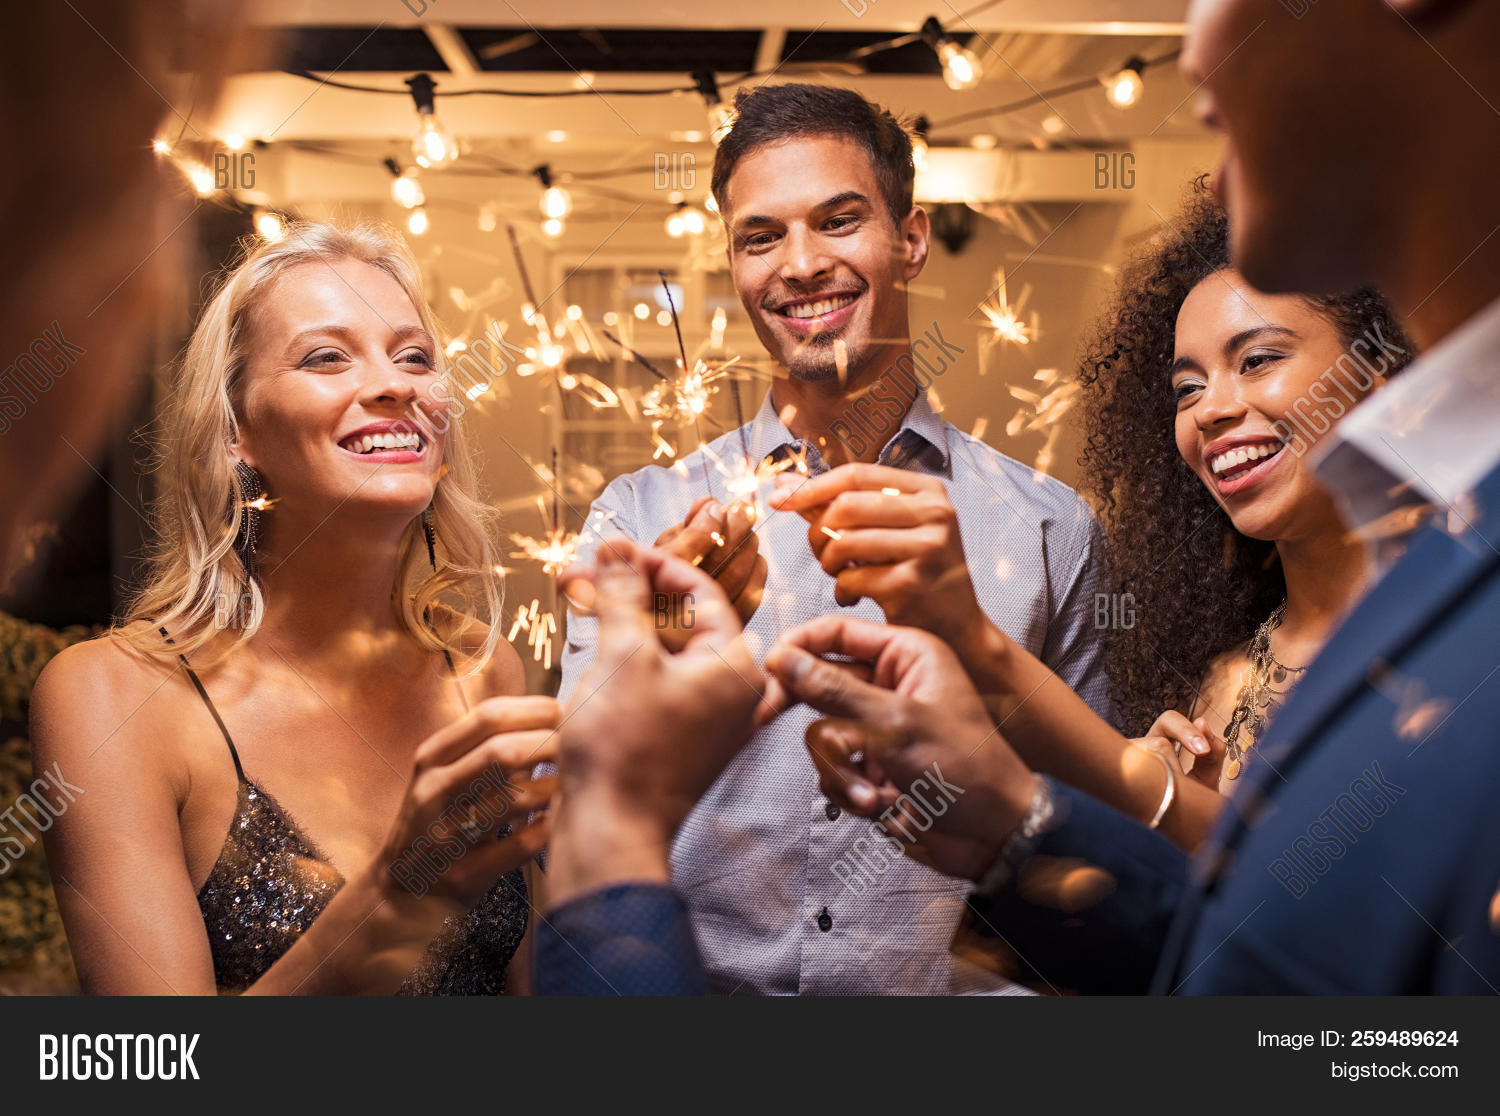 20s,bengal,burning,celebrate,celebrating,celebration,elegant,enjoy,eve,evening,event,excitement,festive,firework,friend,friends,fun,girl,girls,group,guy,guys,happy,having fun,holding,holiday,laughing,man,men,multi ethnic group,multiethnic,new,new year eve,new year's eve,new year's eve party,night,party,people,playful,sparkler,sparkling,sparkling lights,sparks,stick,stylish,together,woman,women,year,young